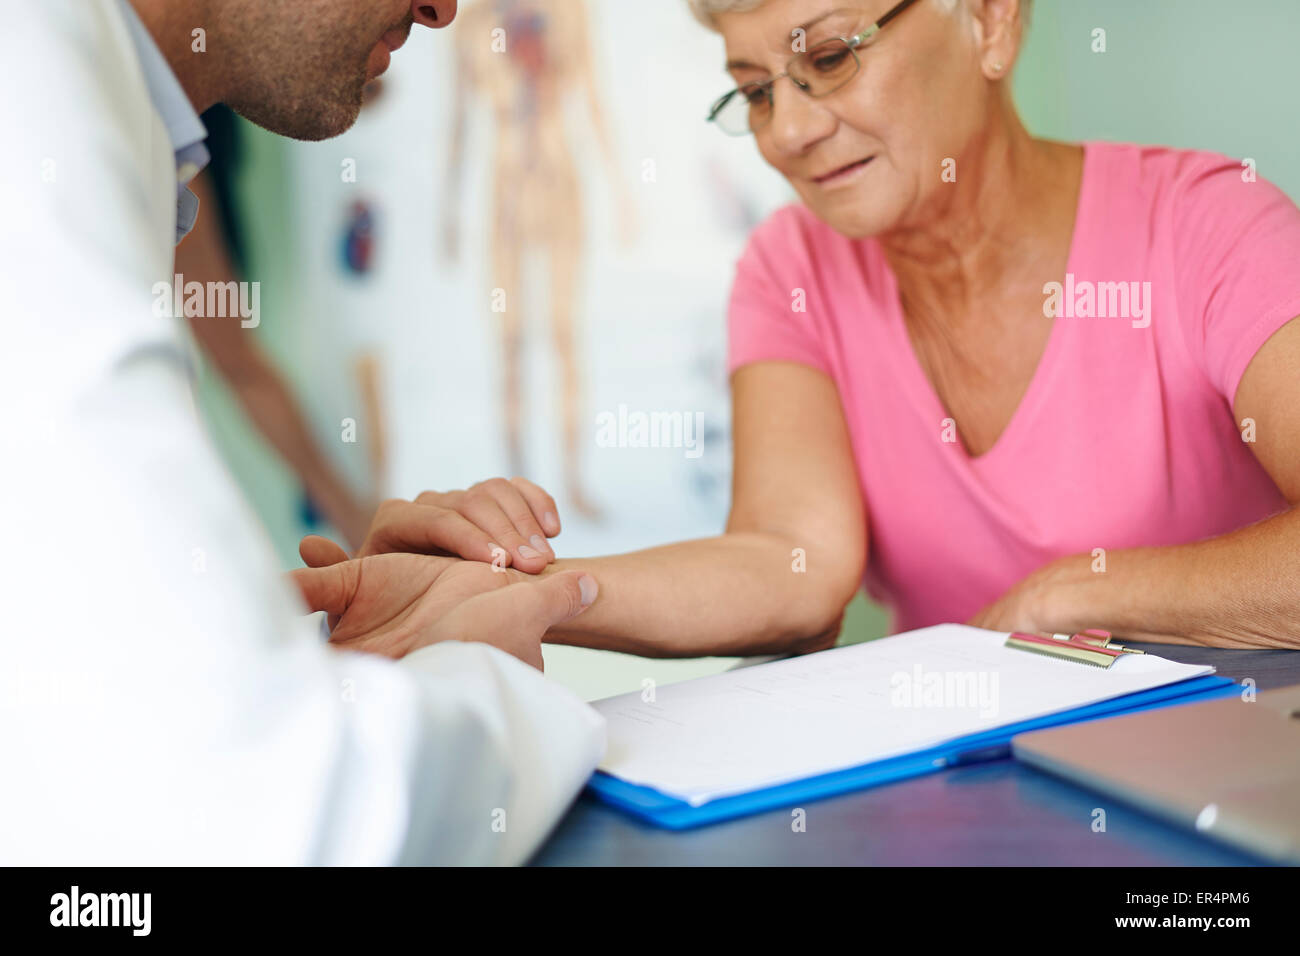 Testing pressure in doctor's office. Debica, Poland - Stock Image